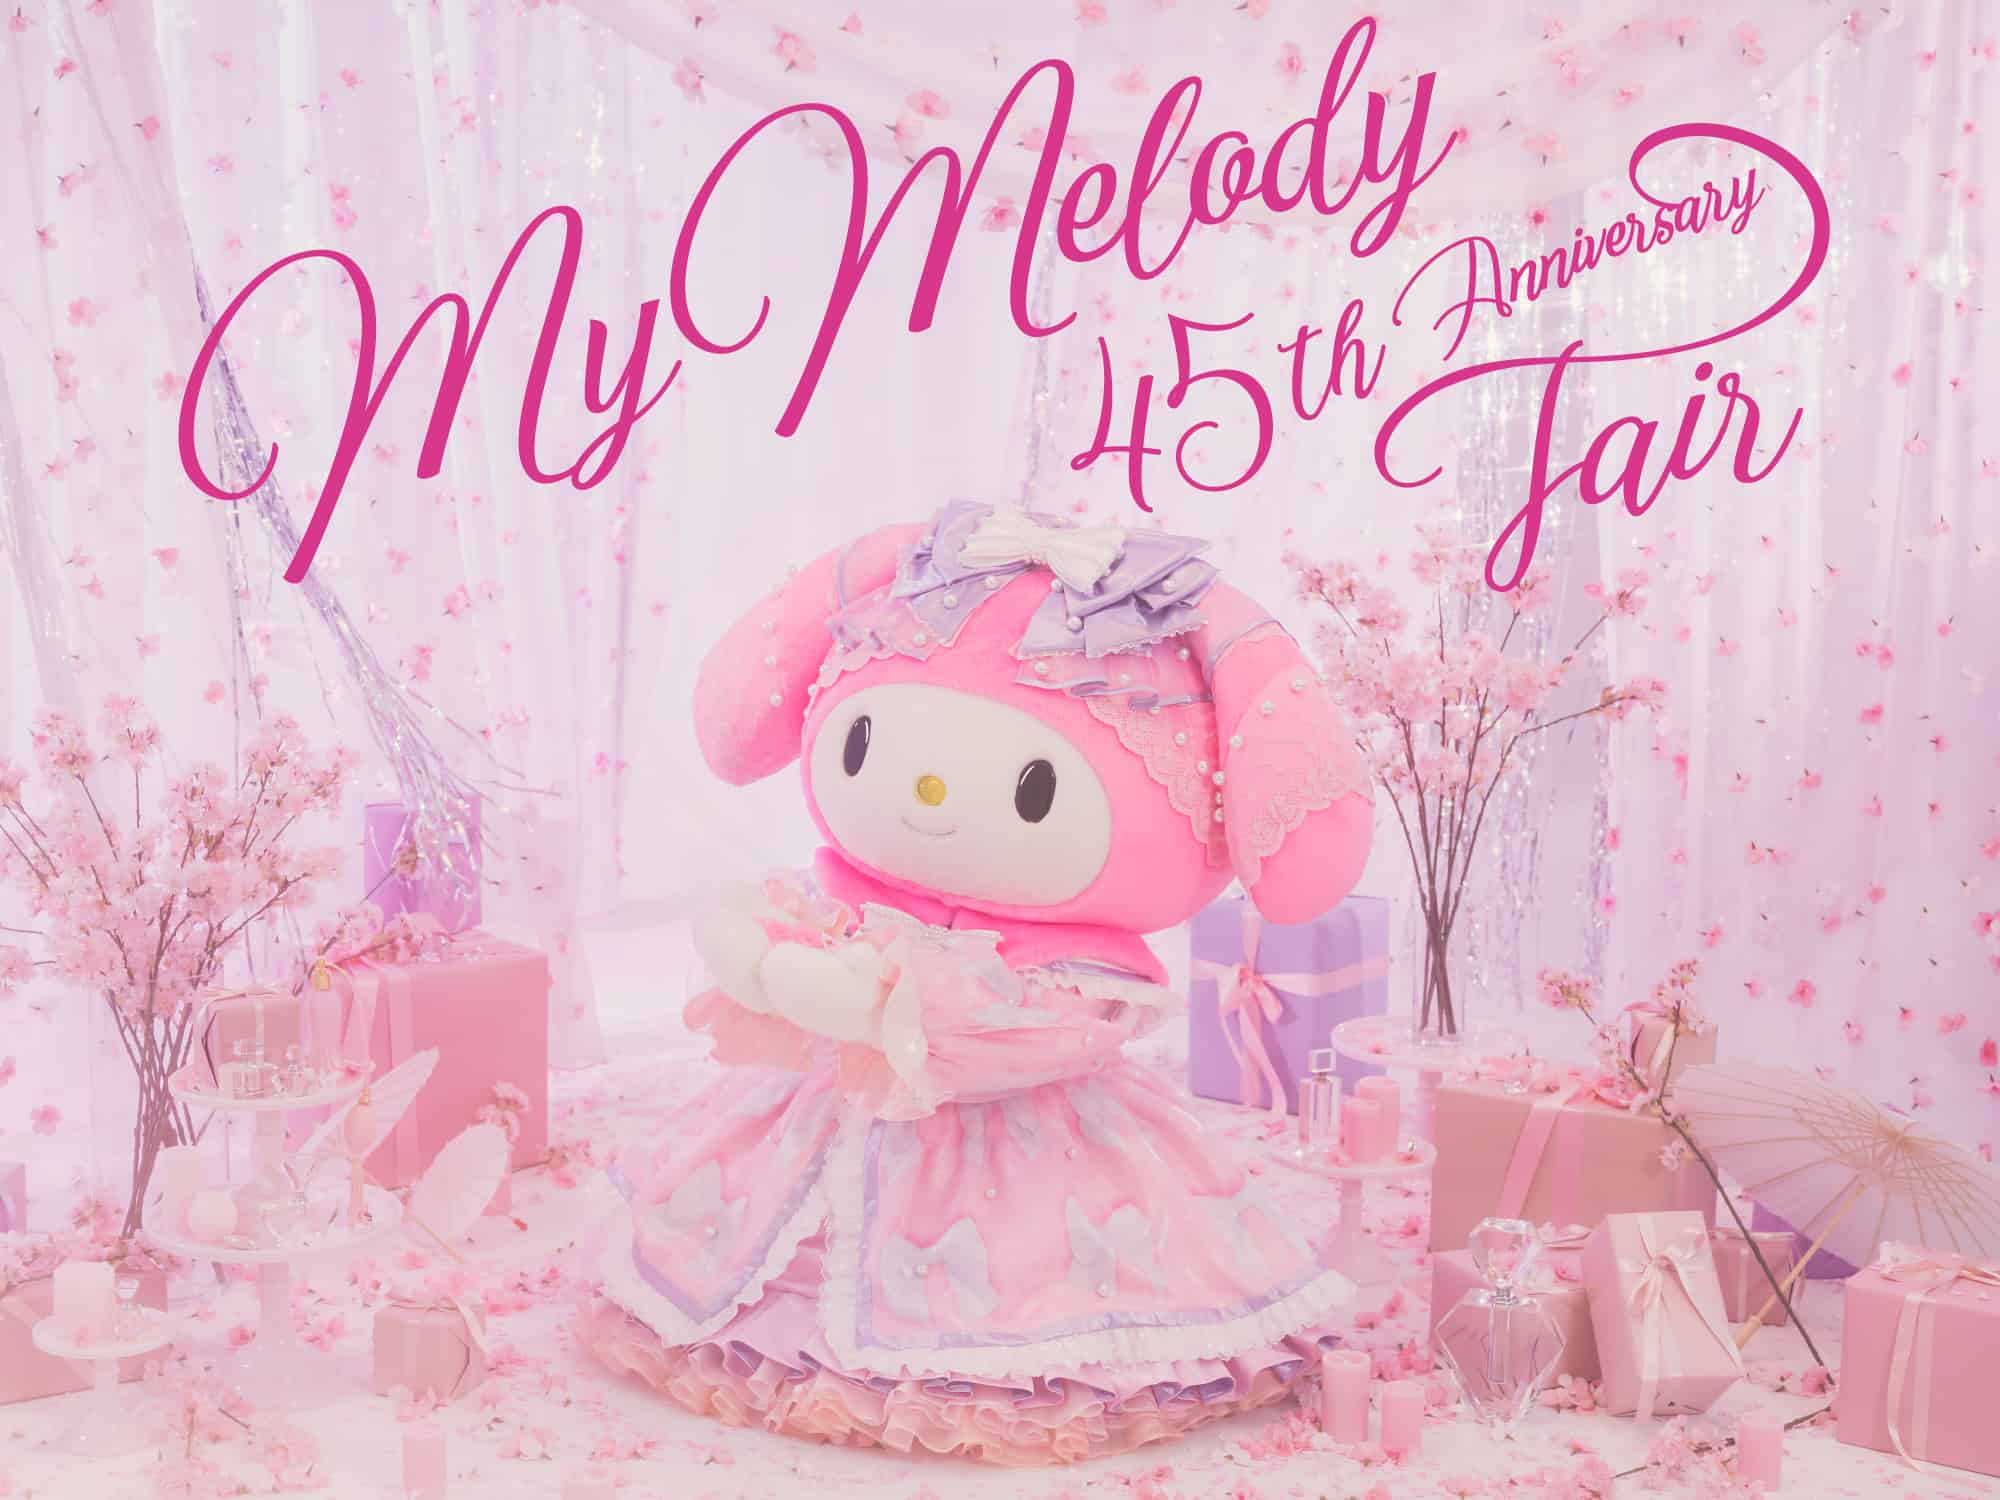 งาน My Melody 45th Anniversary Fair